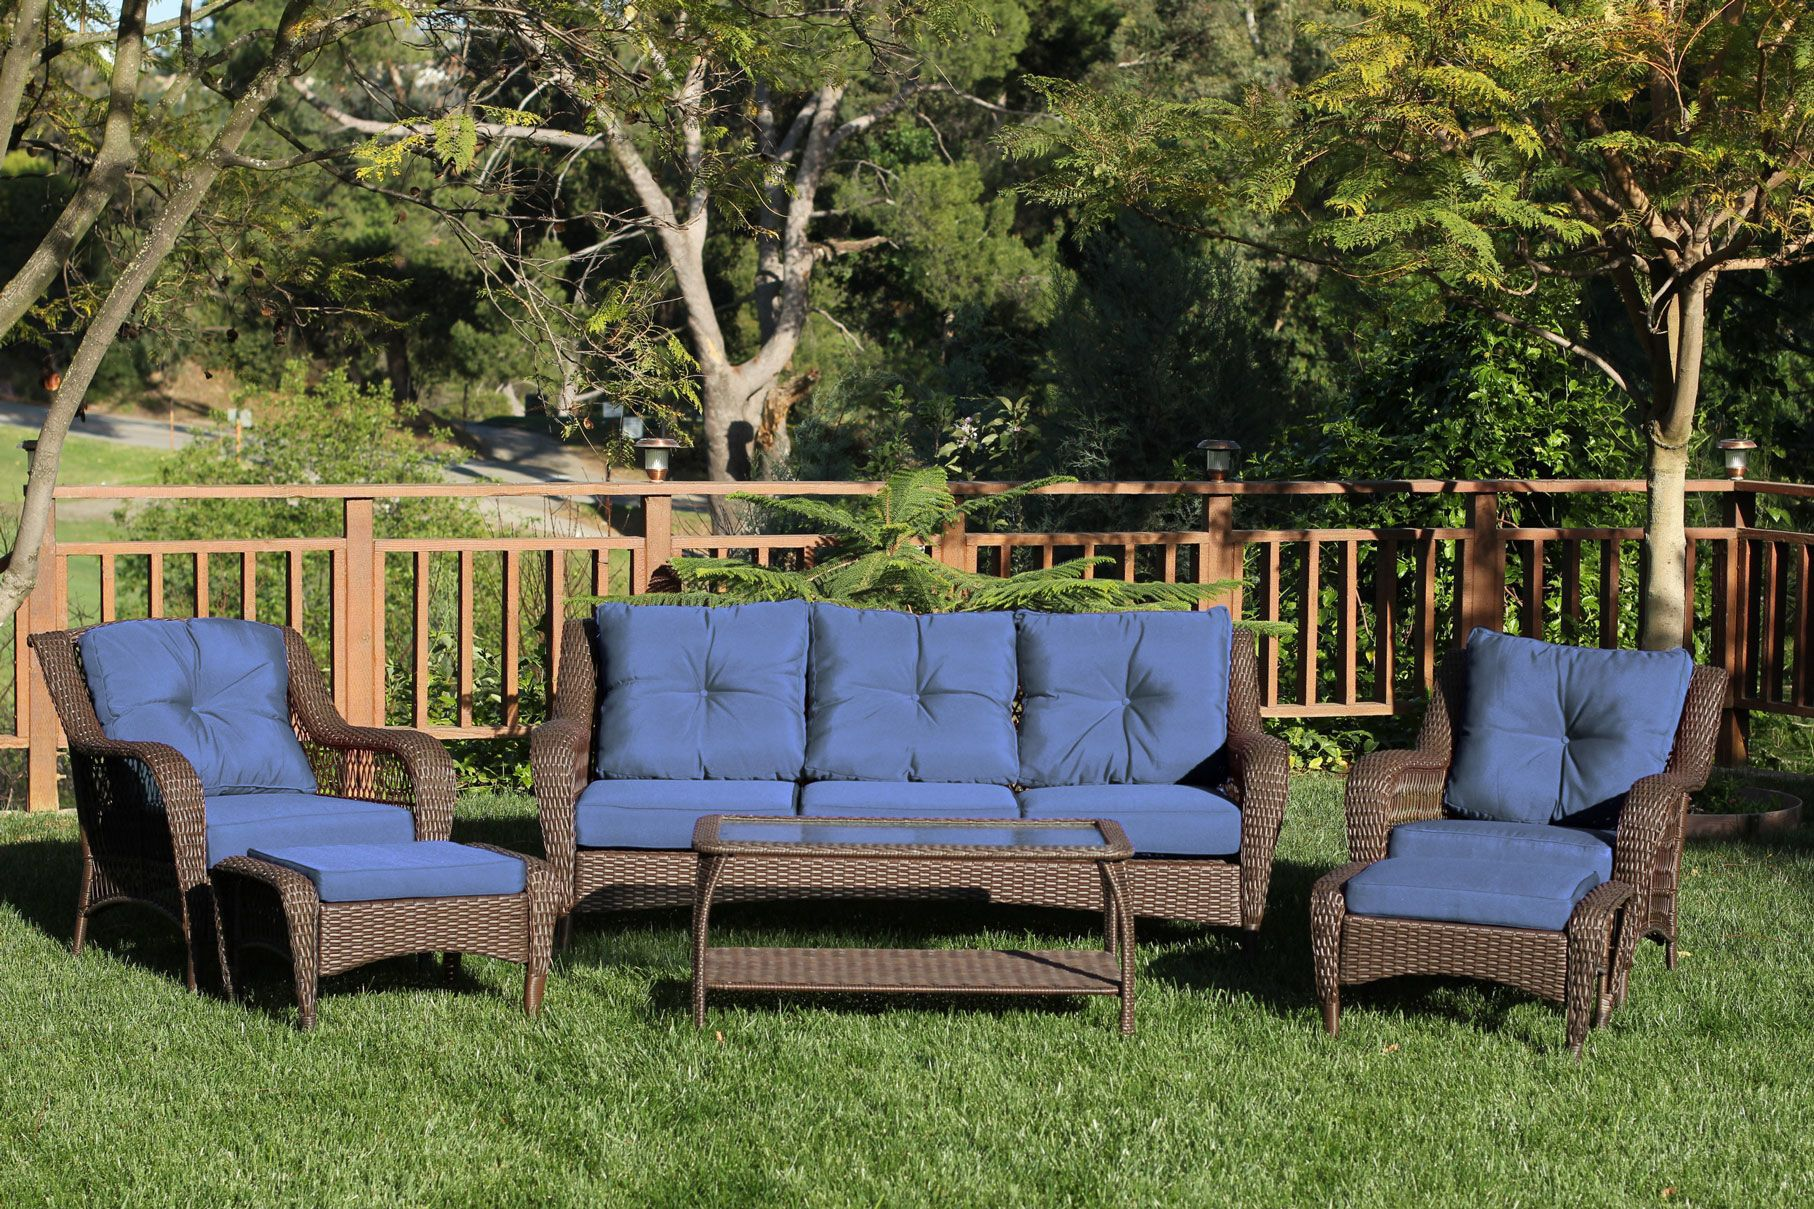 6 Piece Wicker Seating Group with Cushions